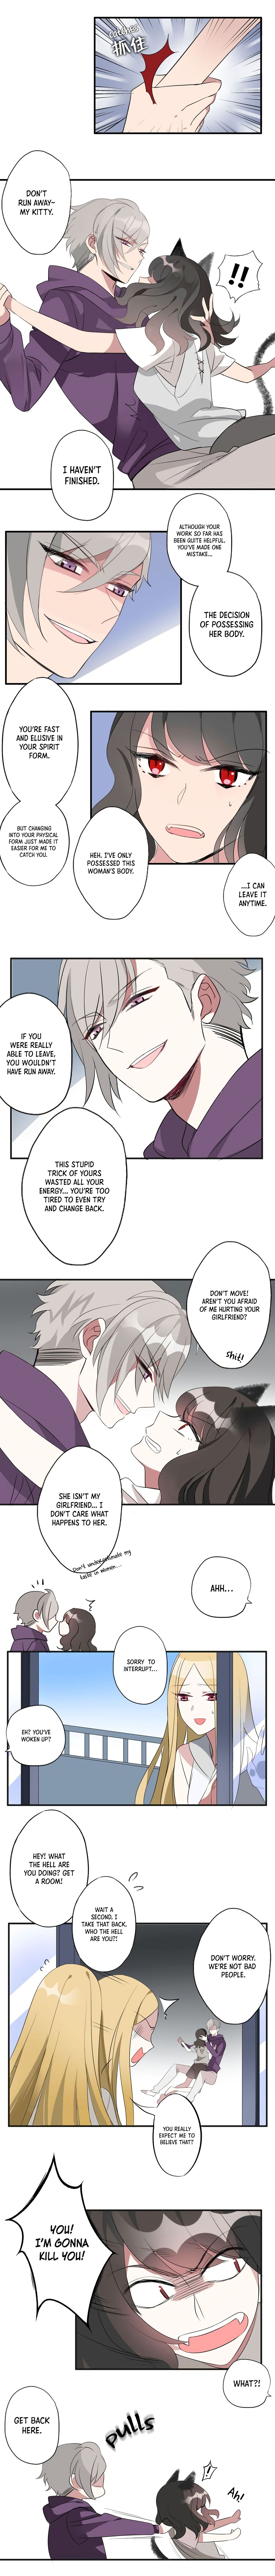 Mr. Magician and Miss Science - chapter 7 - #3